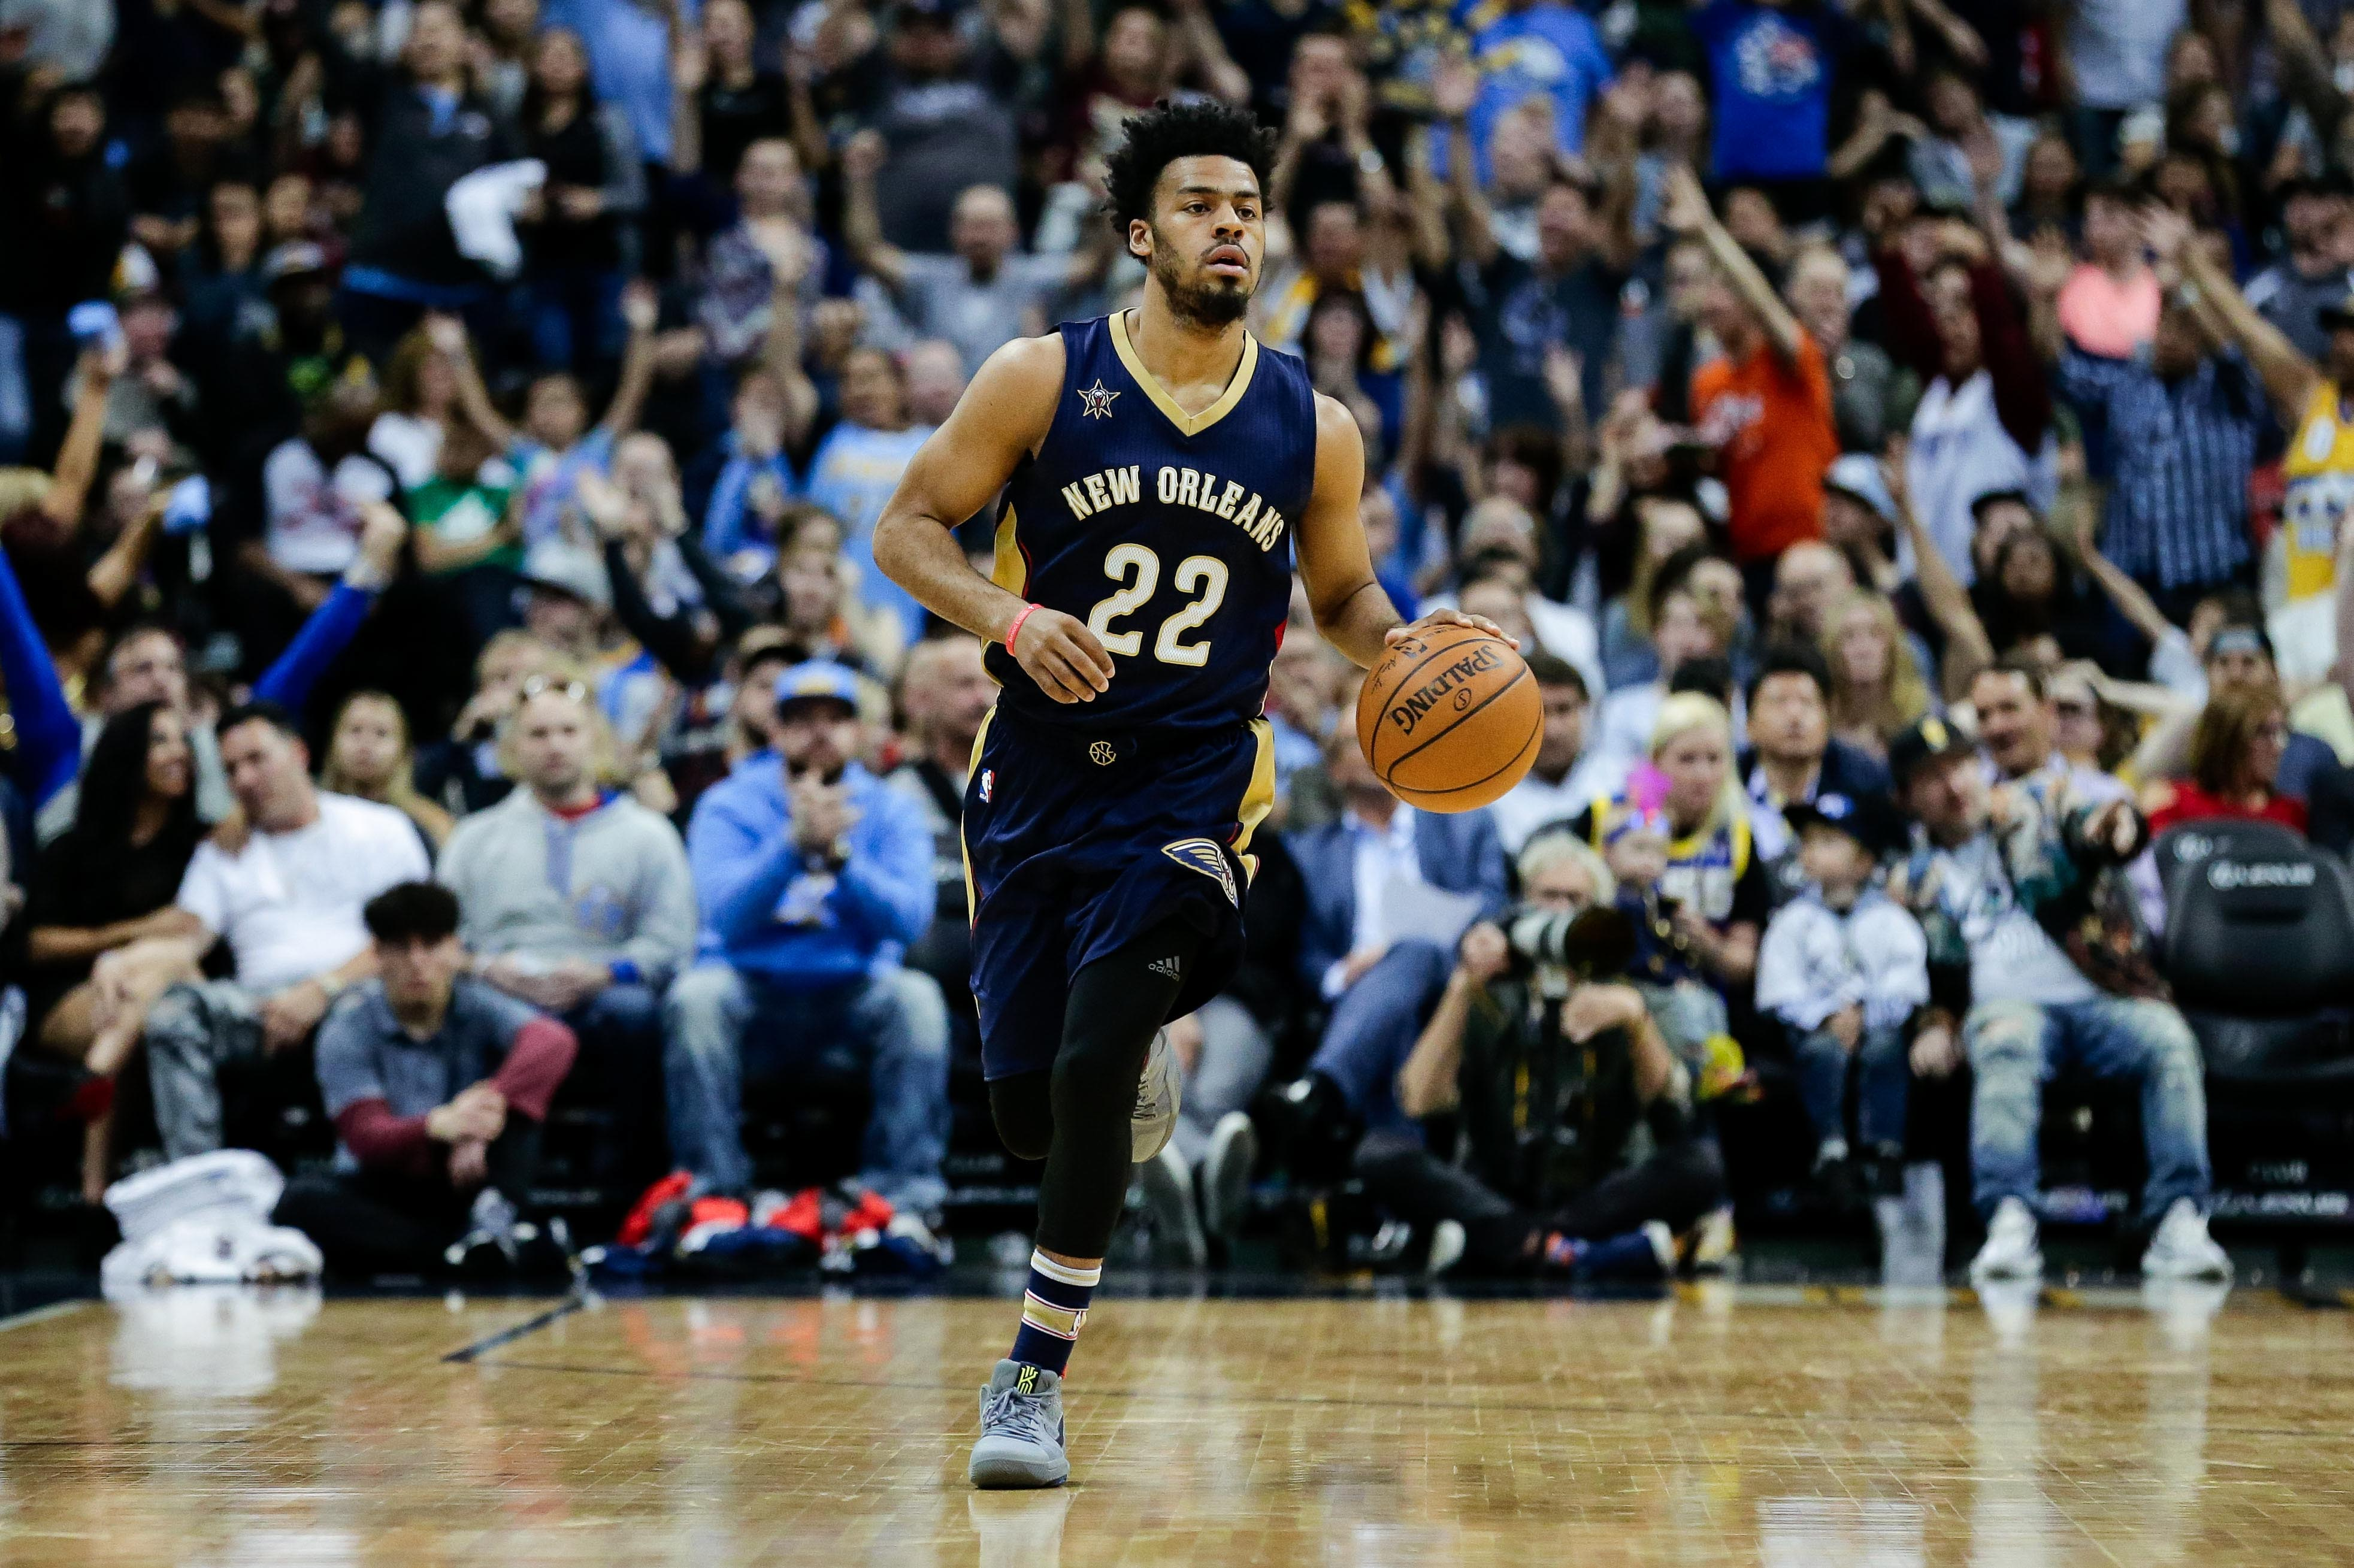 10007858-nba-new-orleans-pelicans-at-denver-nuggets